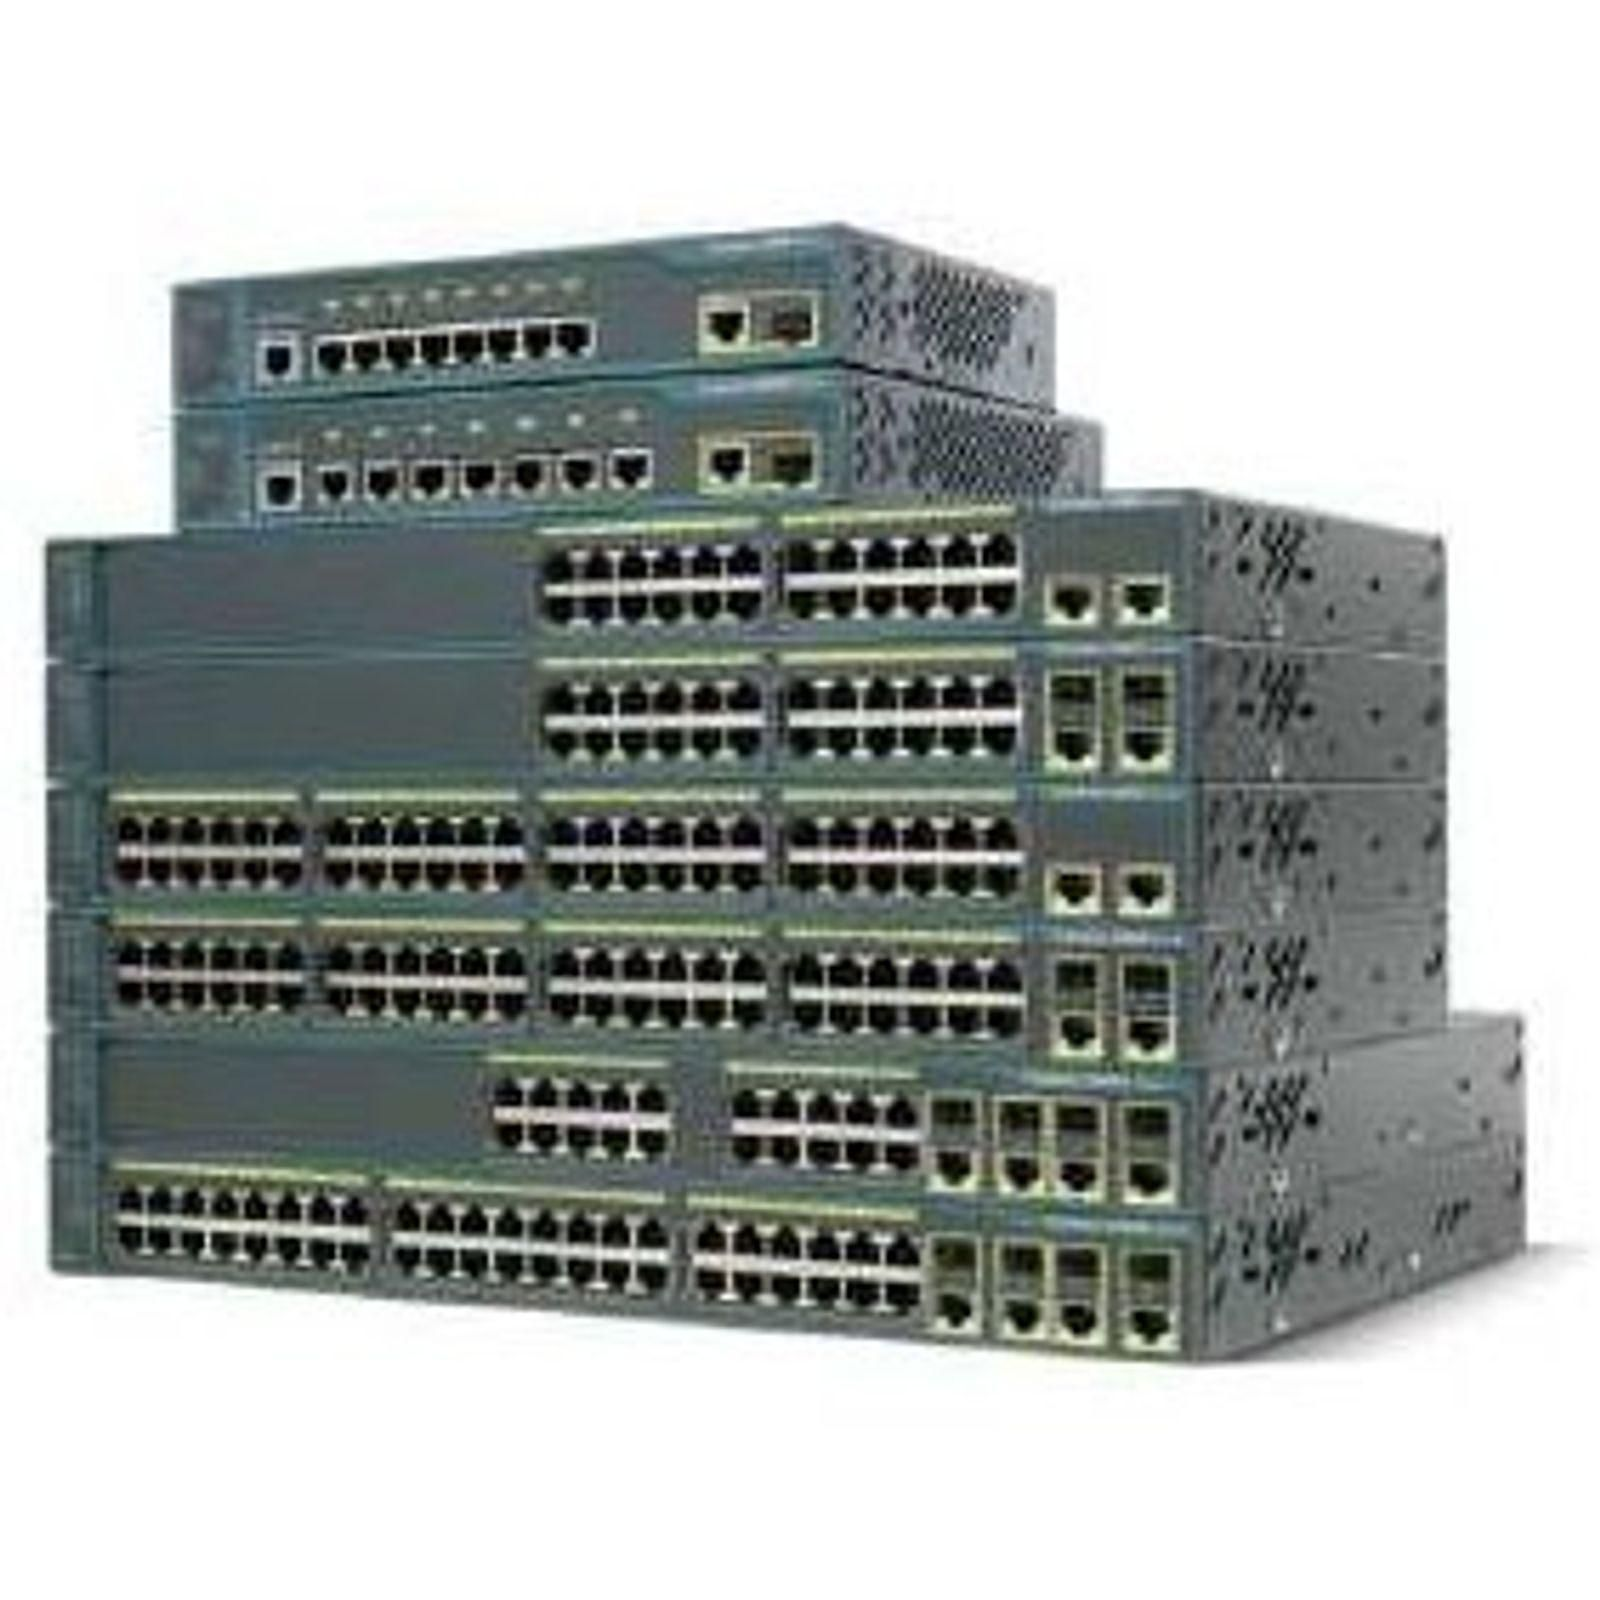 Cisco Catalyst 2960 PLUS 24 10/100 POE 2T/SFP Lan Base - WS-C2960+24PC-S